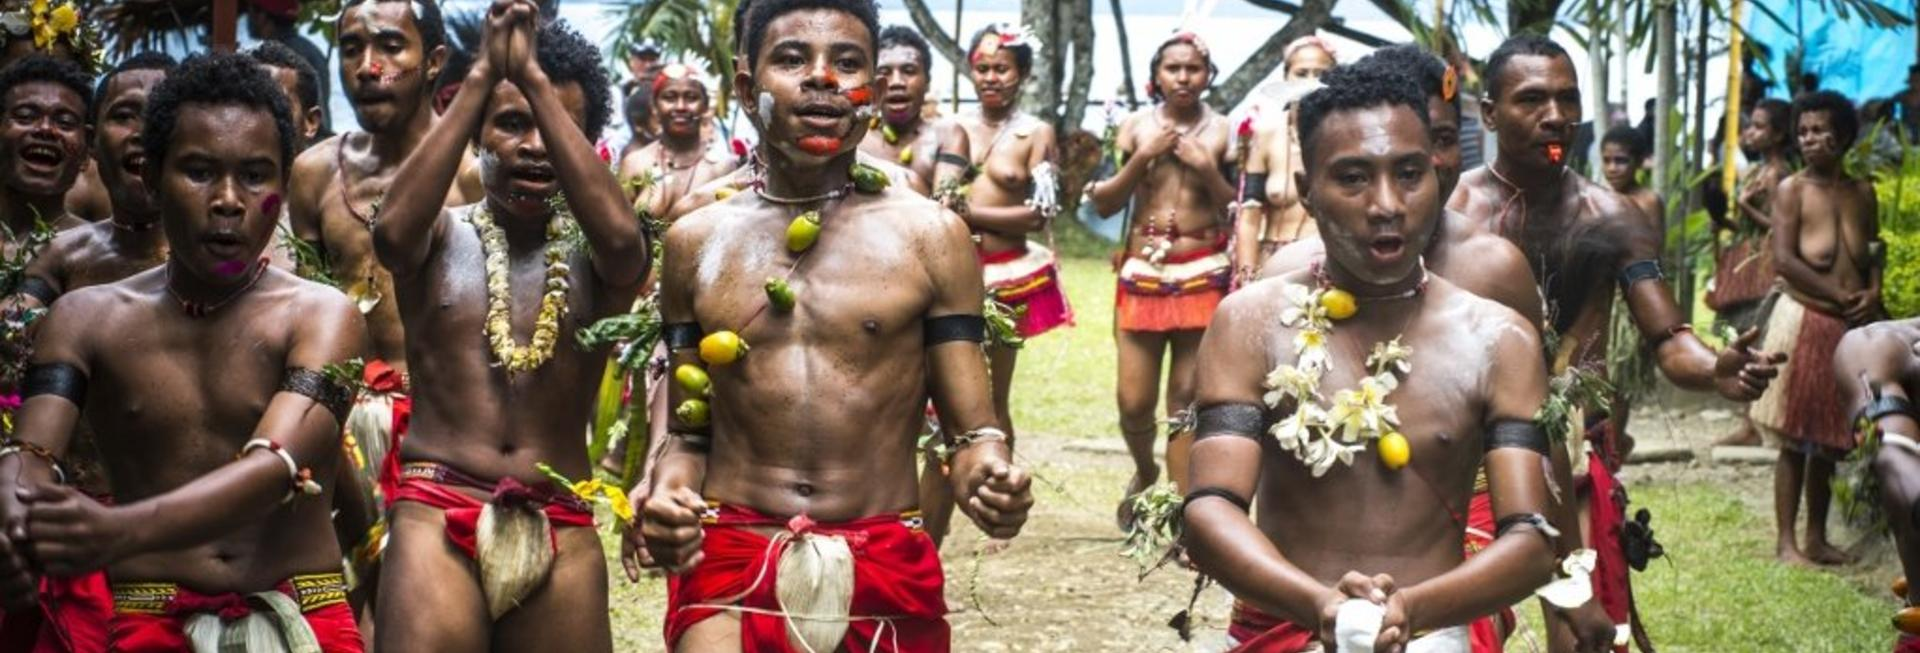 Dancers, The Trobriand Islands